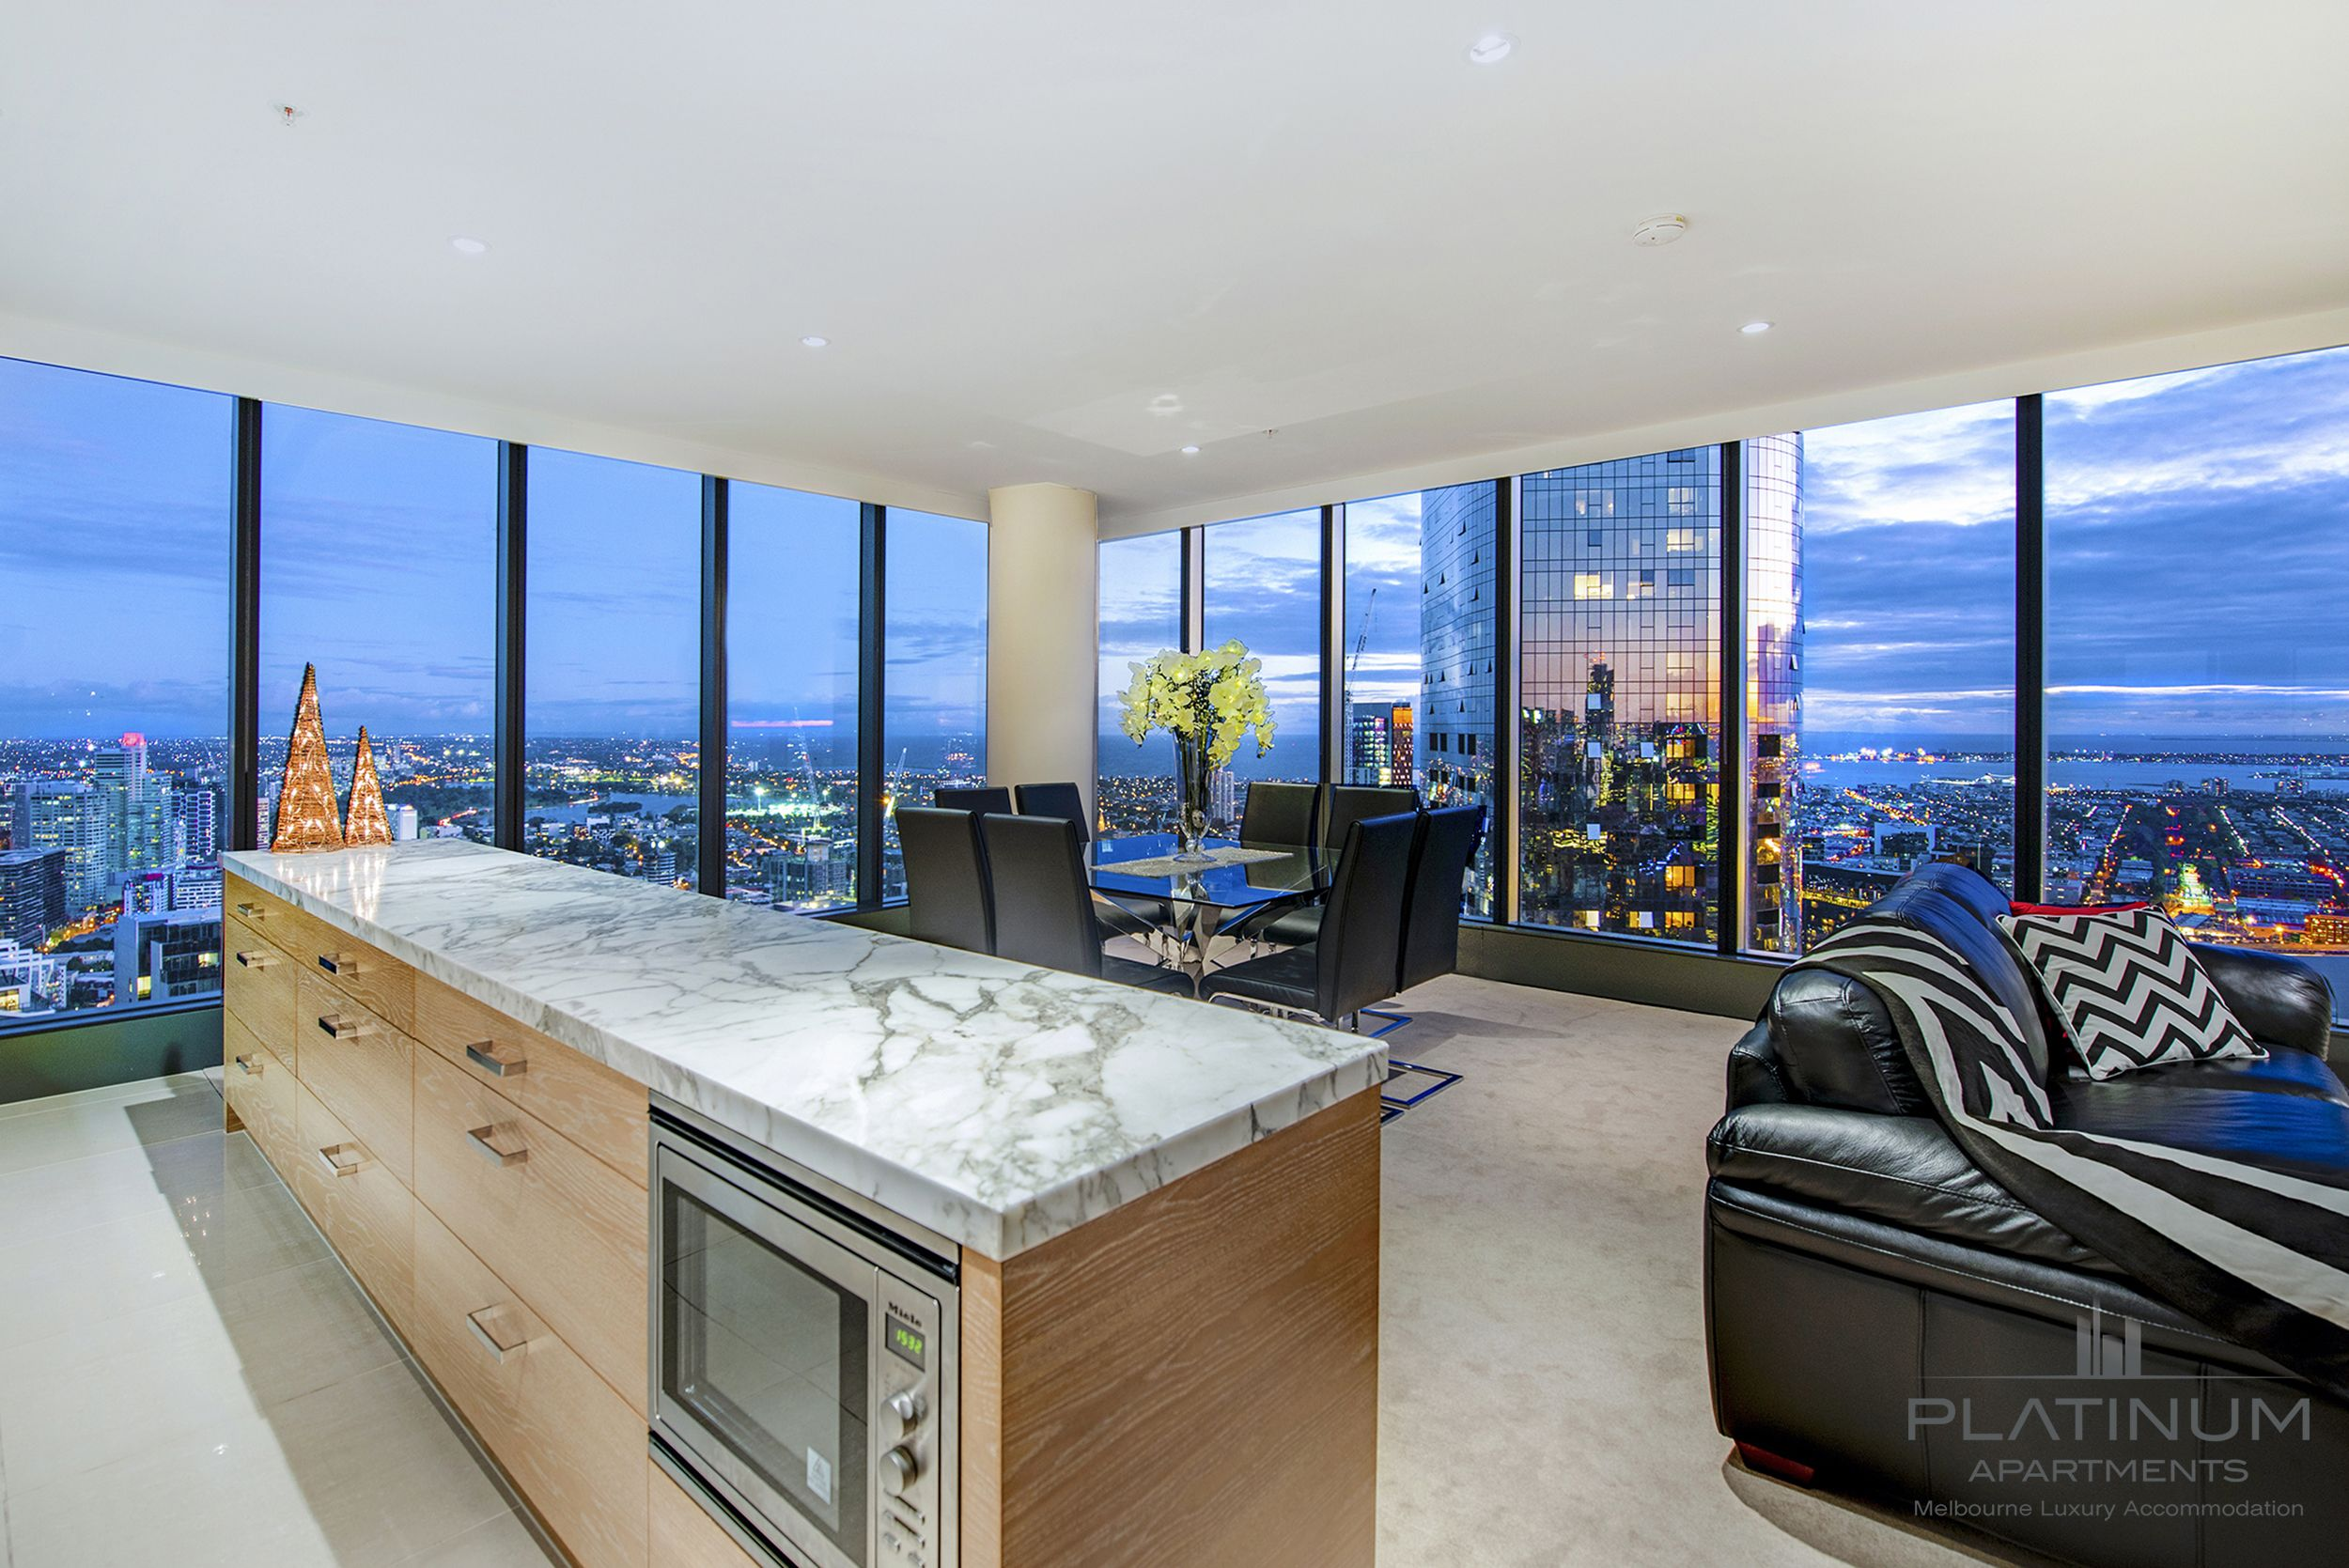 The Best Views From Your Room Platinum Apartments Penthouse Bel Air Apartment Luxury Accommodation Penthouse Apartment Nice View